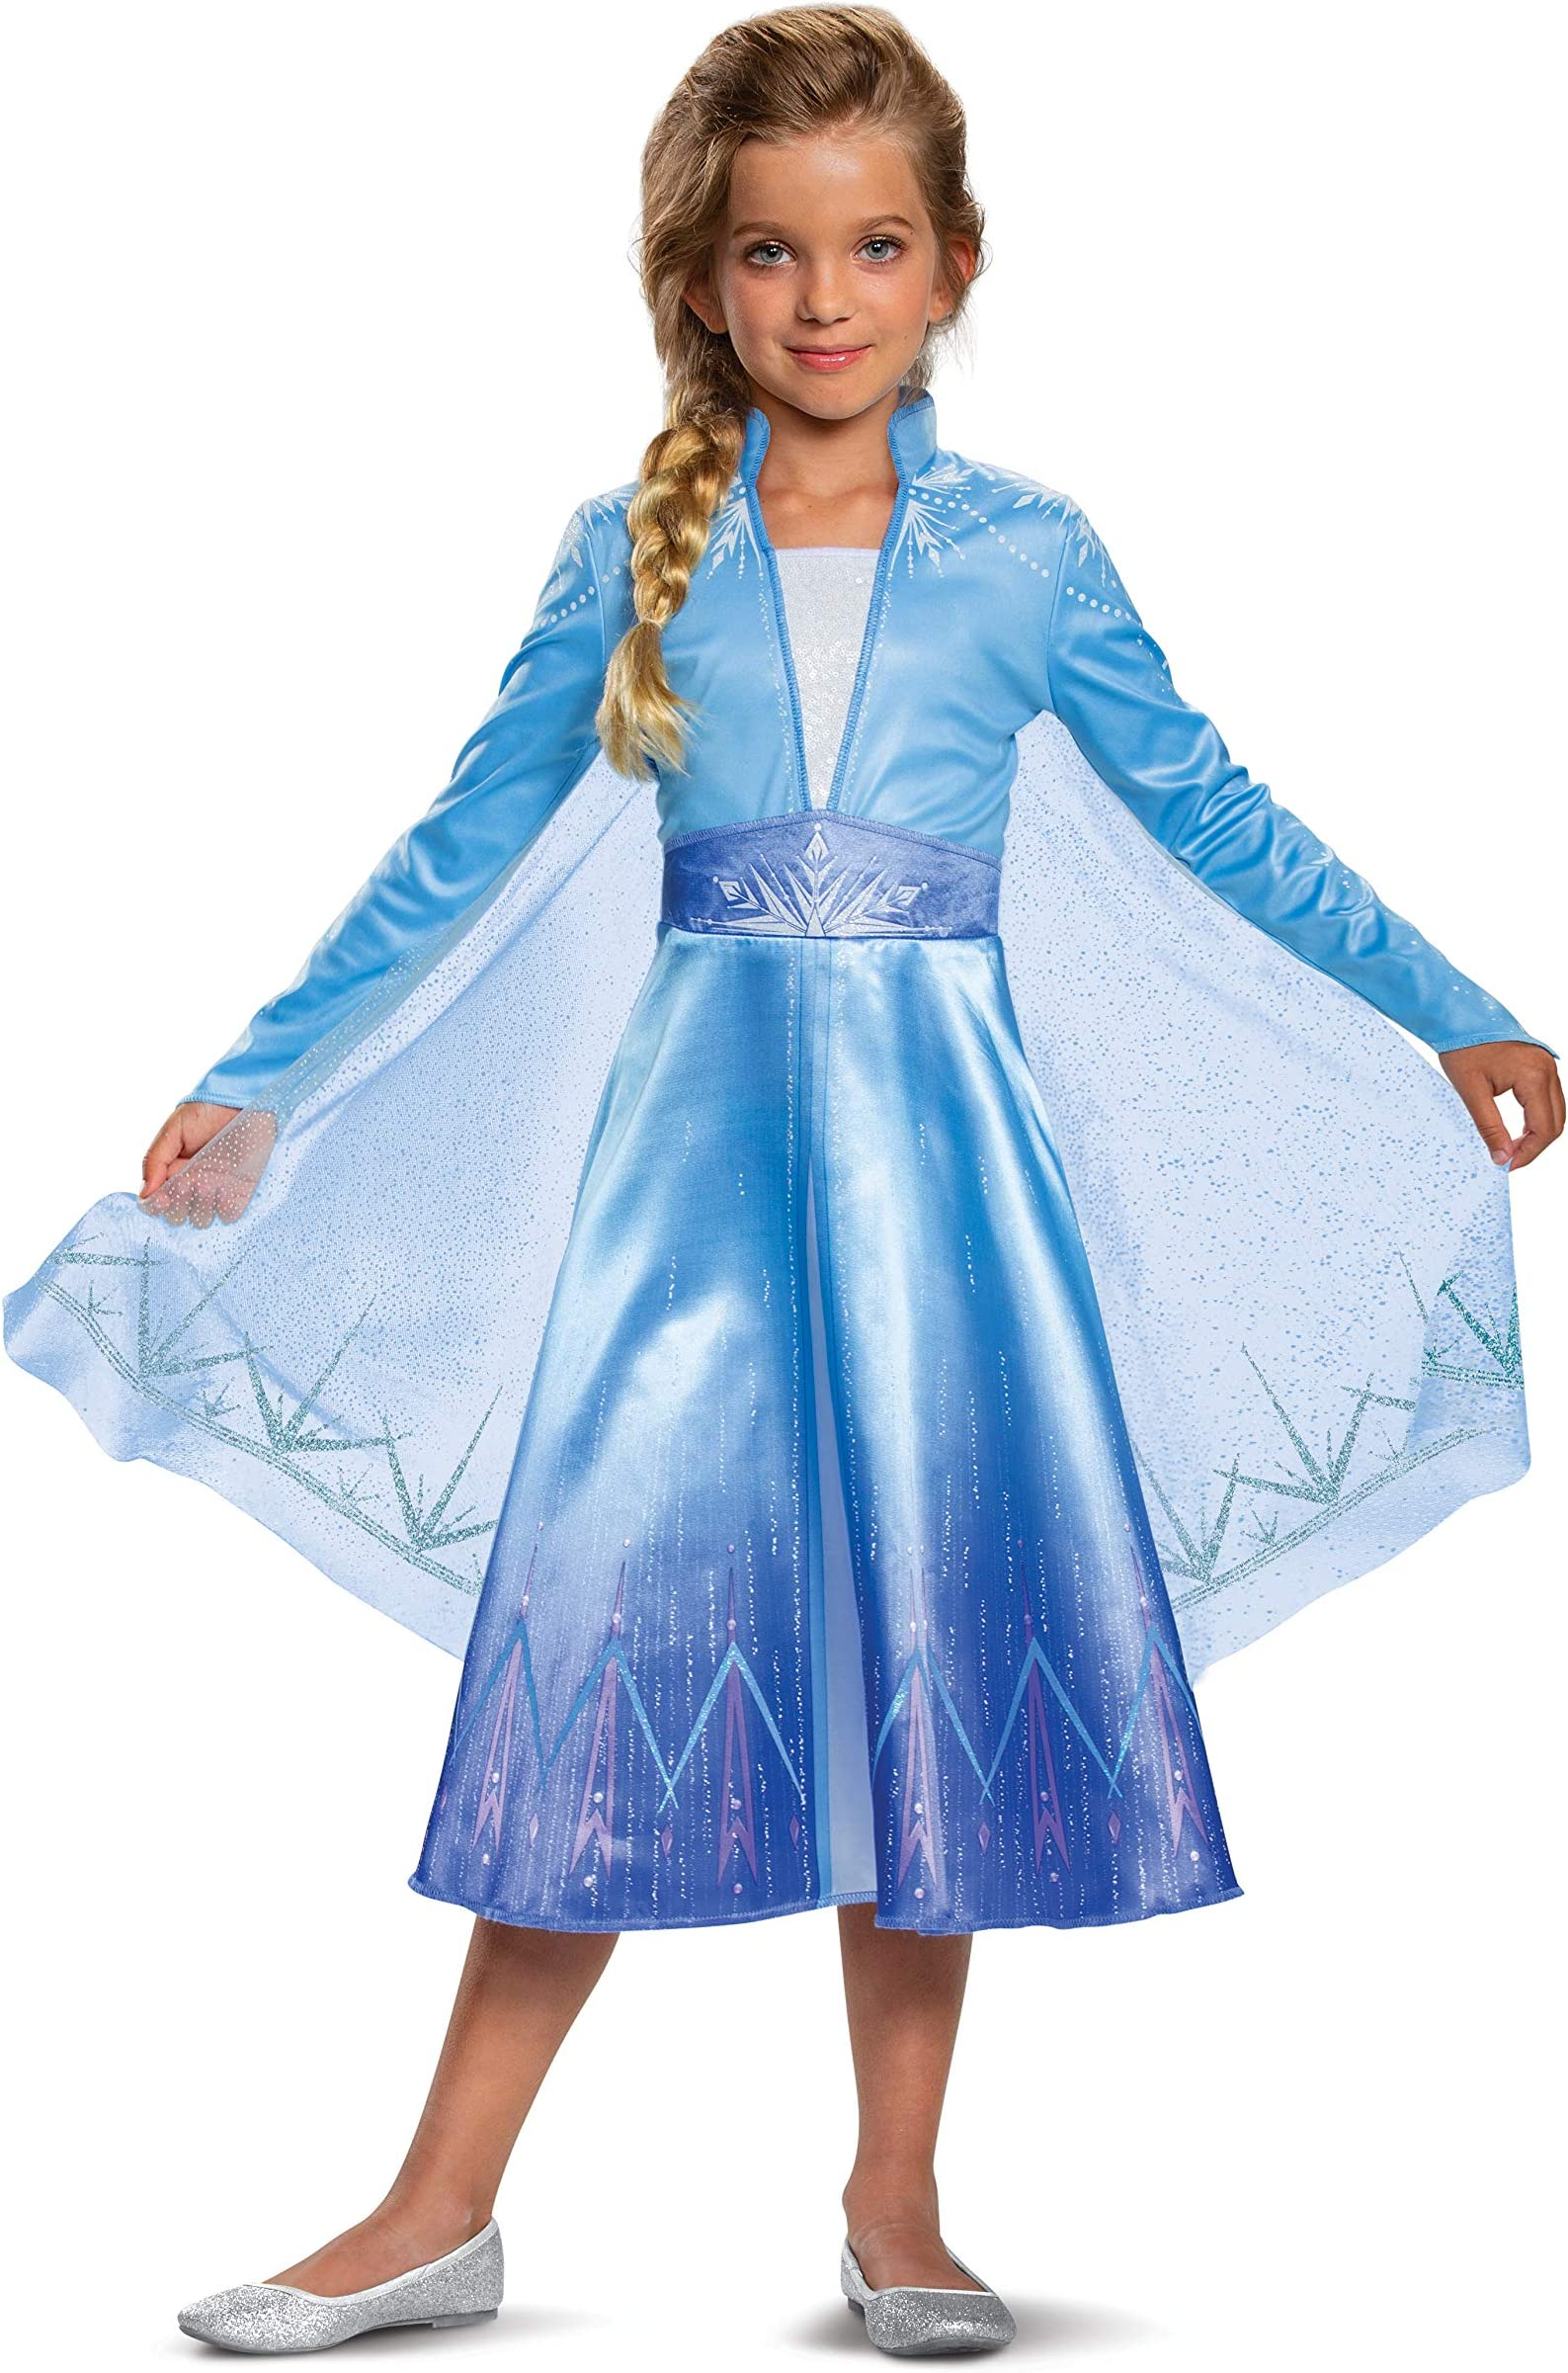 Elsa fifth spirit Frozen 2 cosplay costume for girl disney Halloween outfit kid sparkling dress princess photo prop outfits white gown